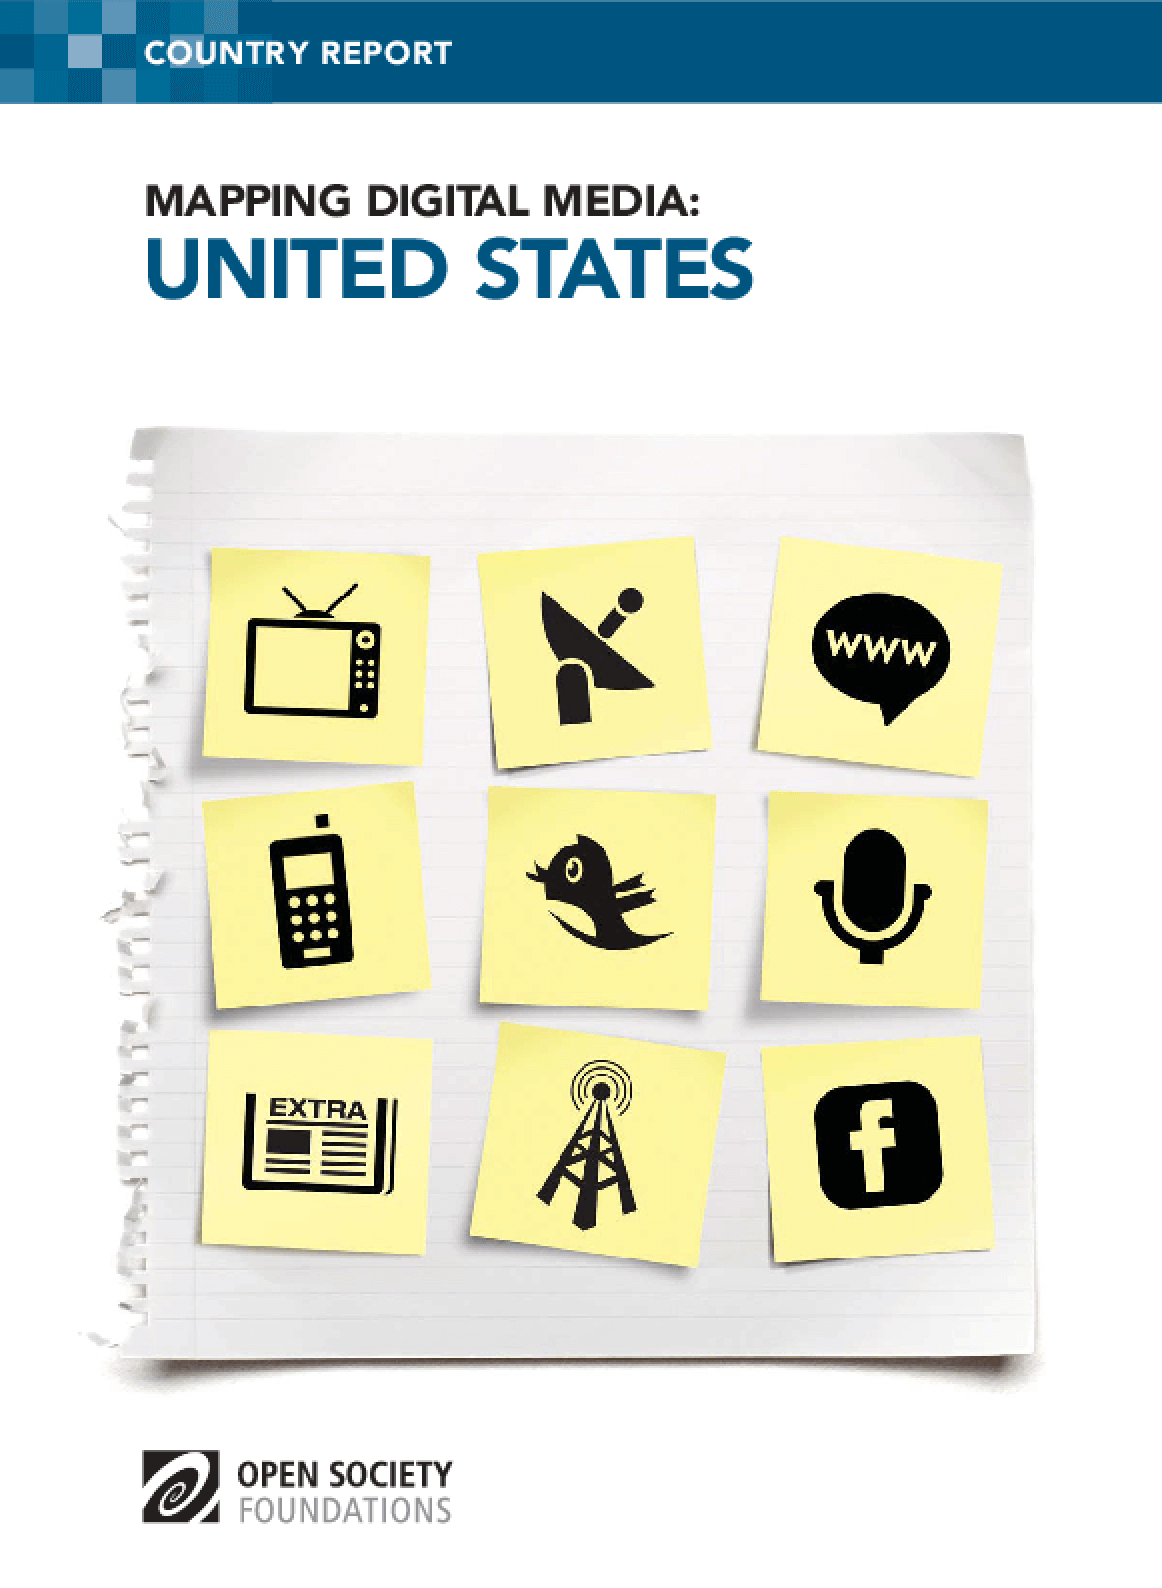 Mapping Digital Media: United States